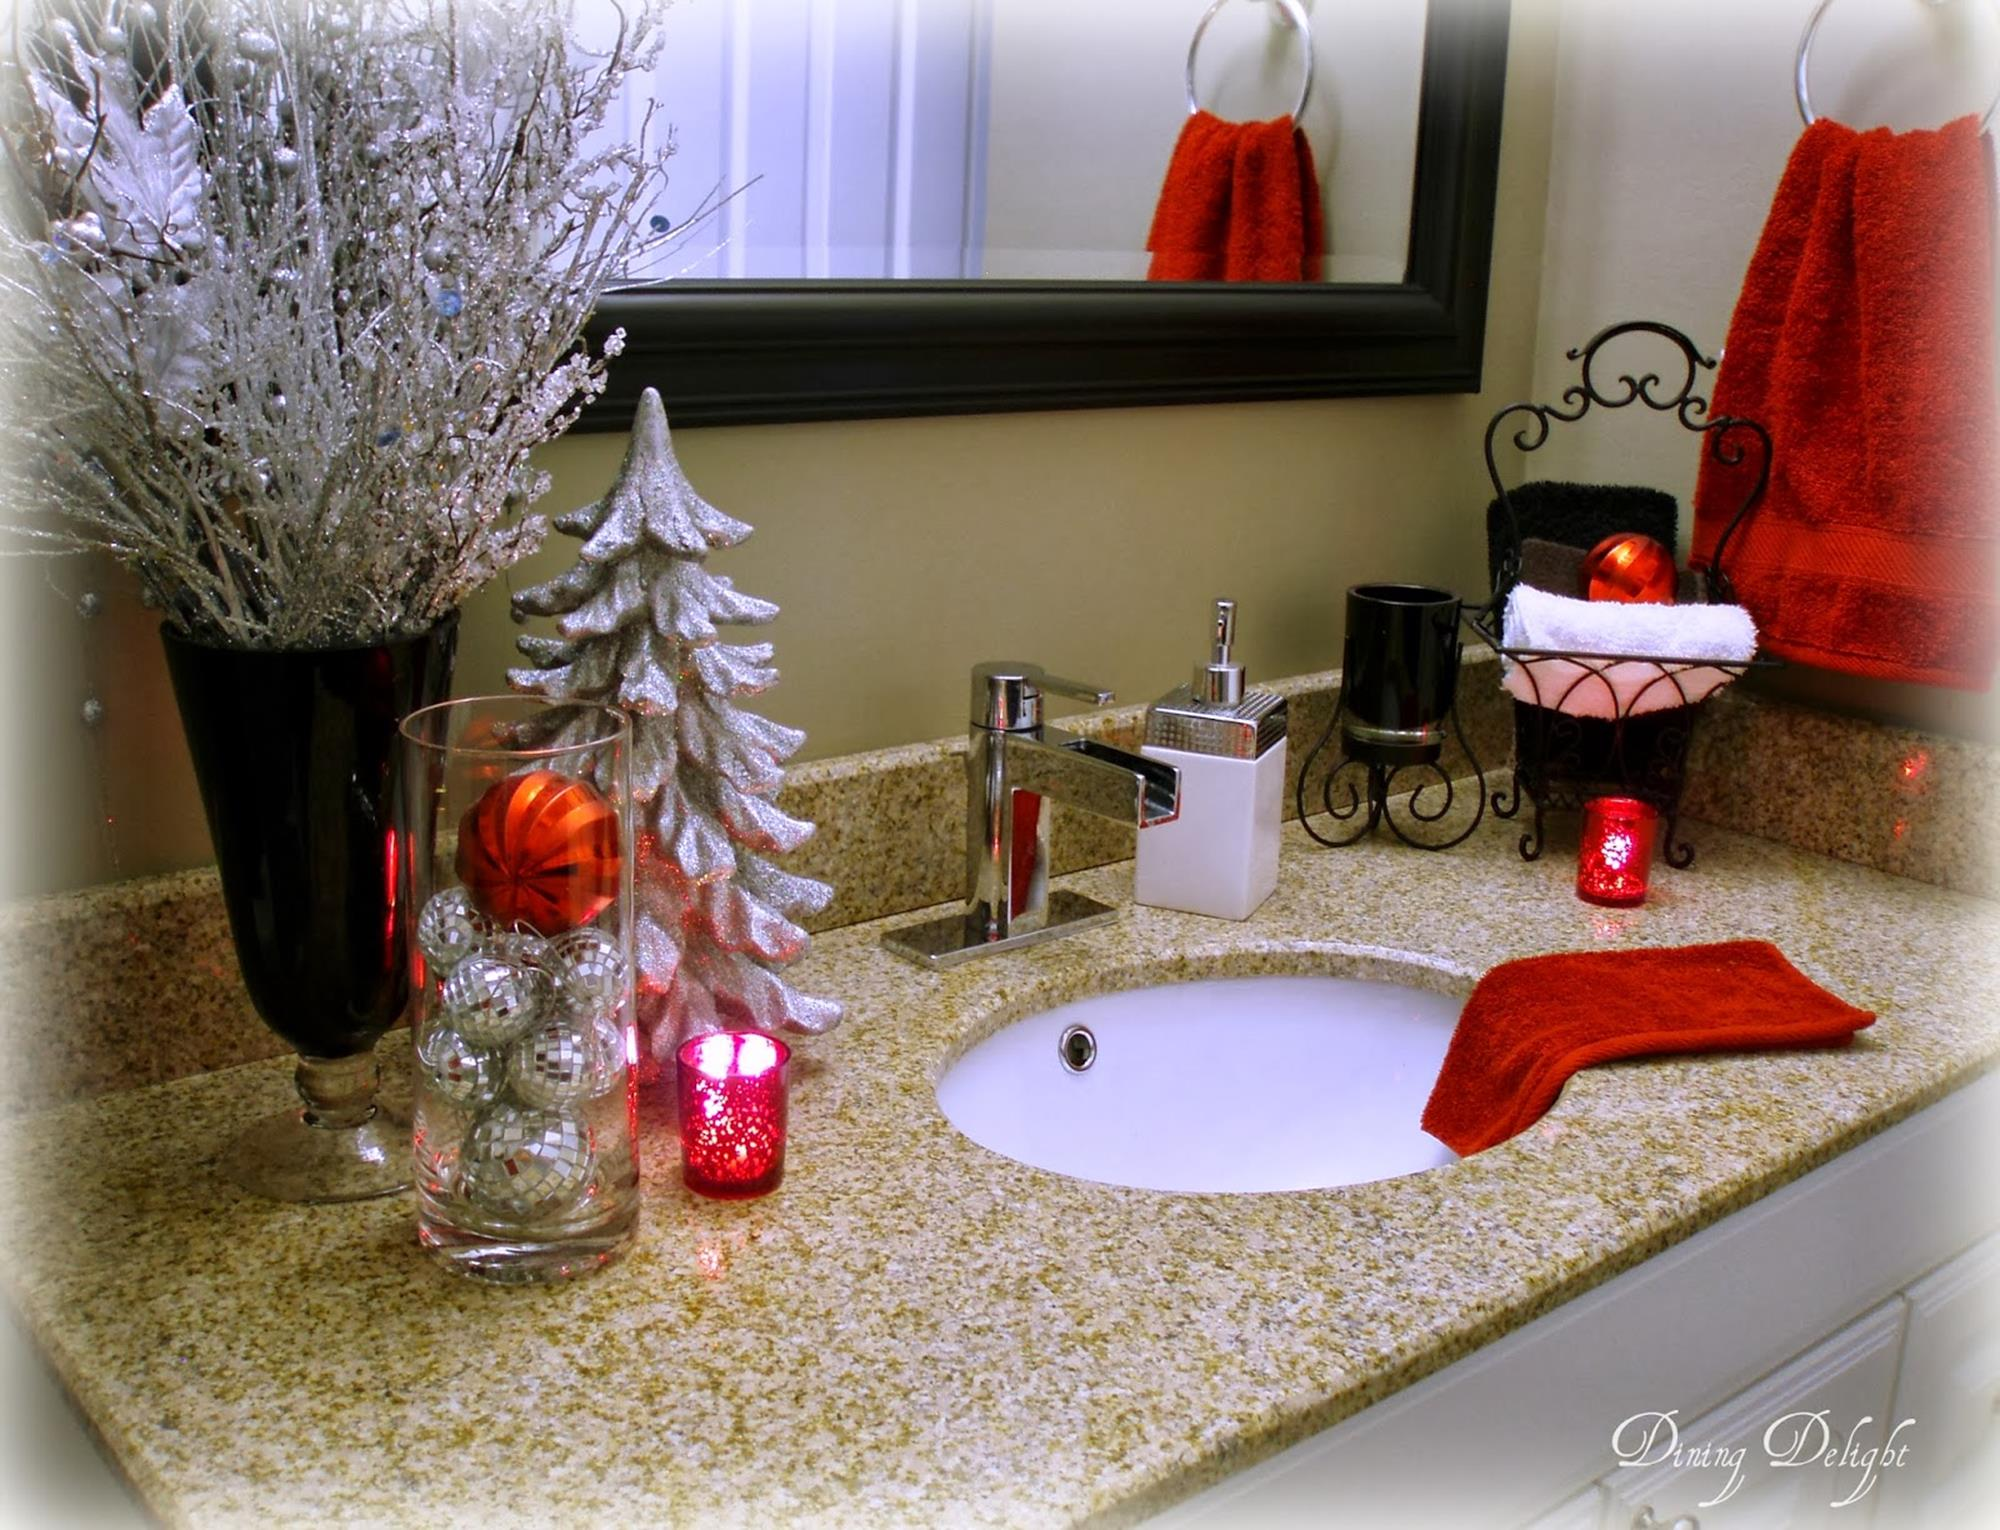 Bathroom with Holiday Wall Decor 26